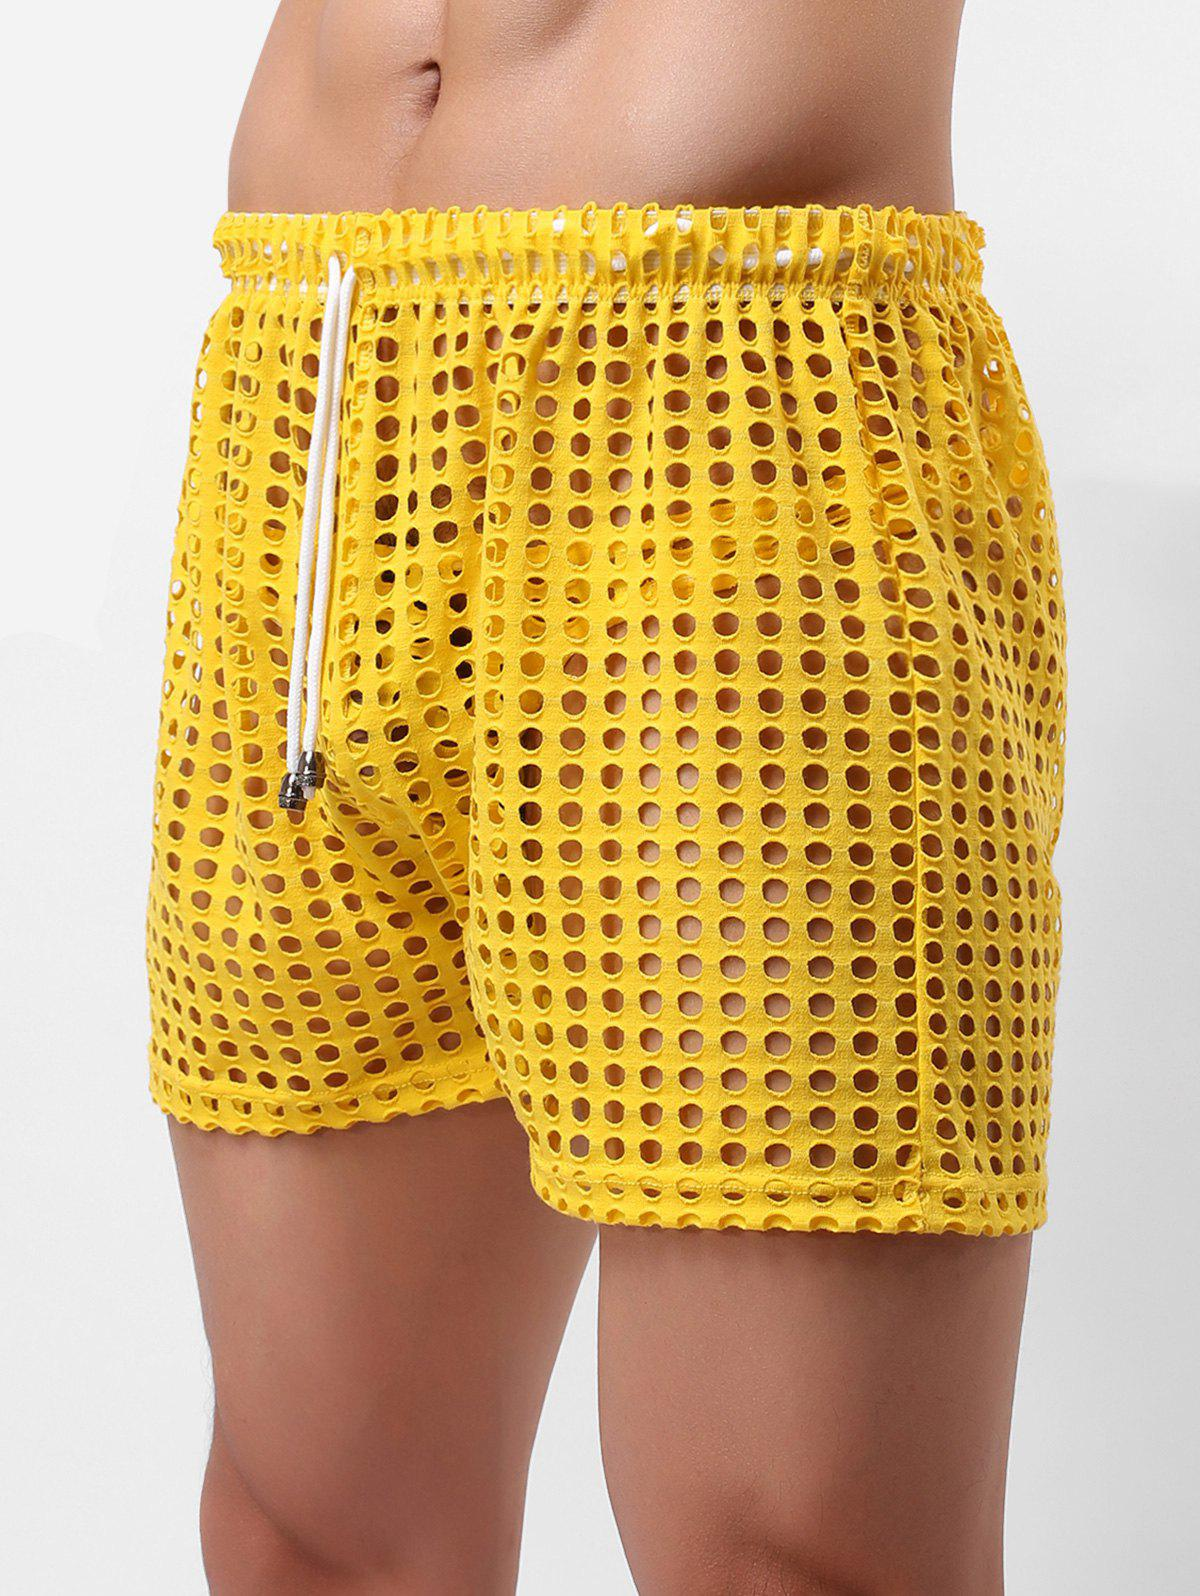 Hollow Out Drawstring Underwear Shorts, Bright yellow